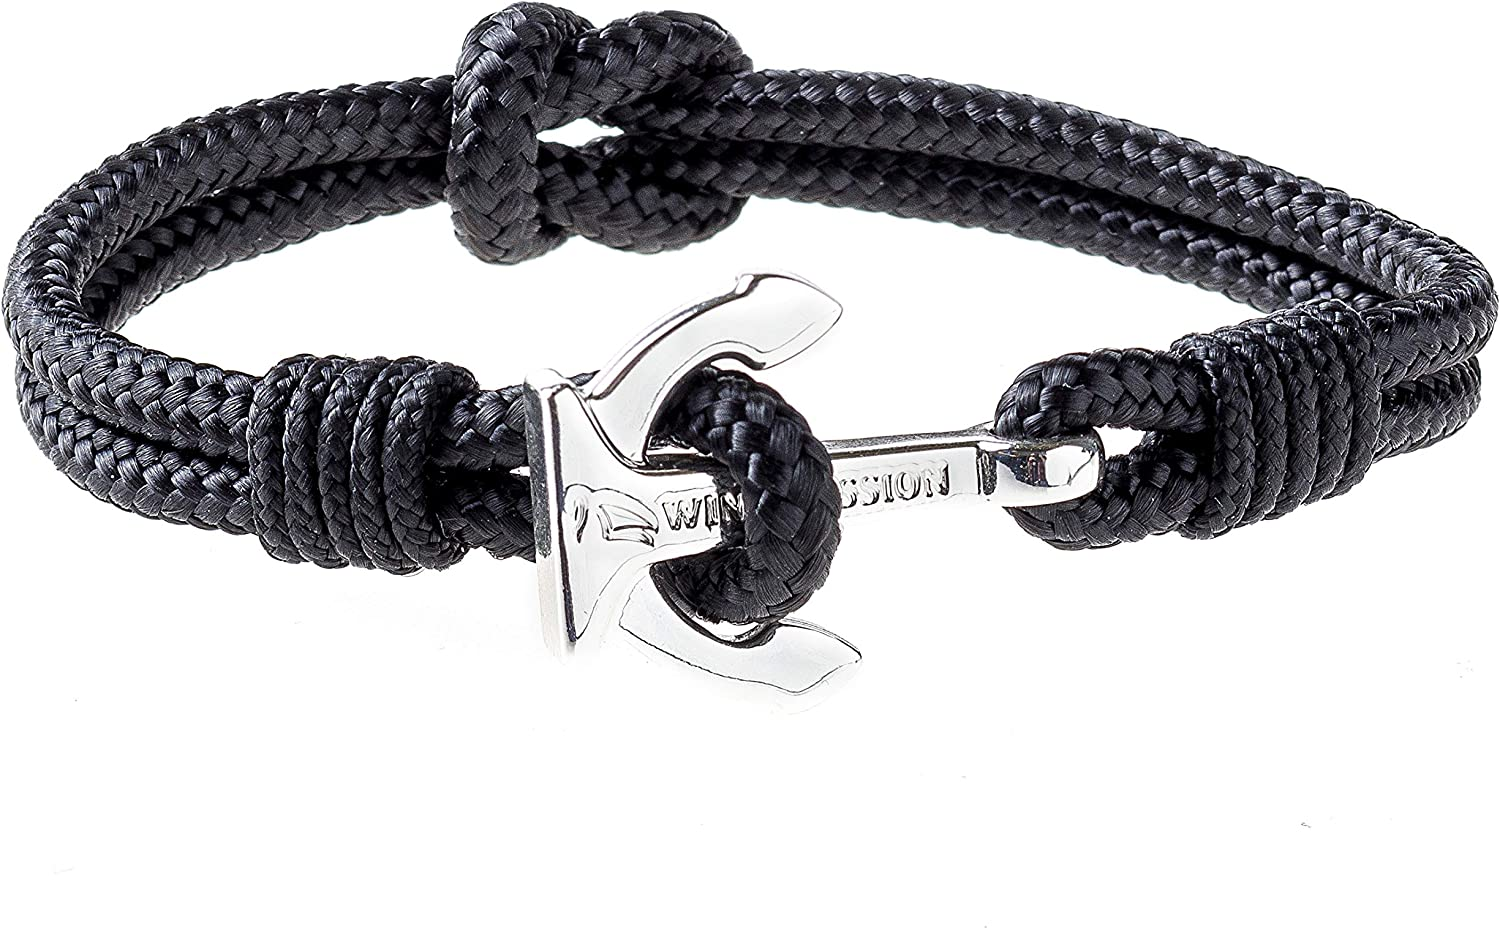 Wind Passion Premium Anchor Bracelet Durable Nautical Rope Cuff Wristband for Men Women